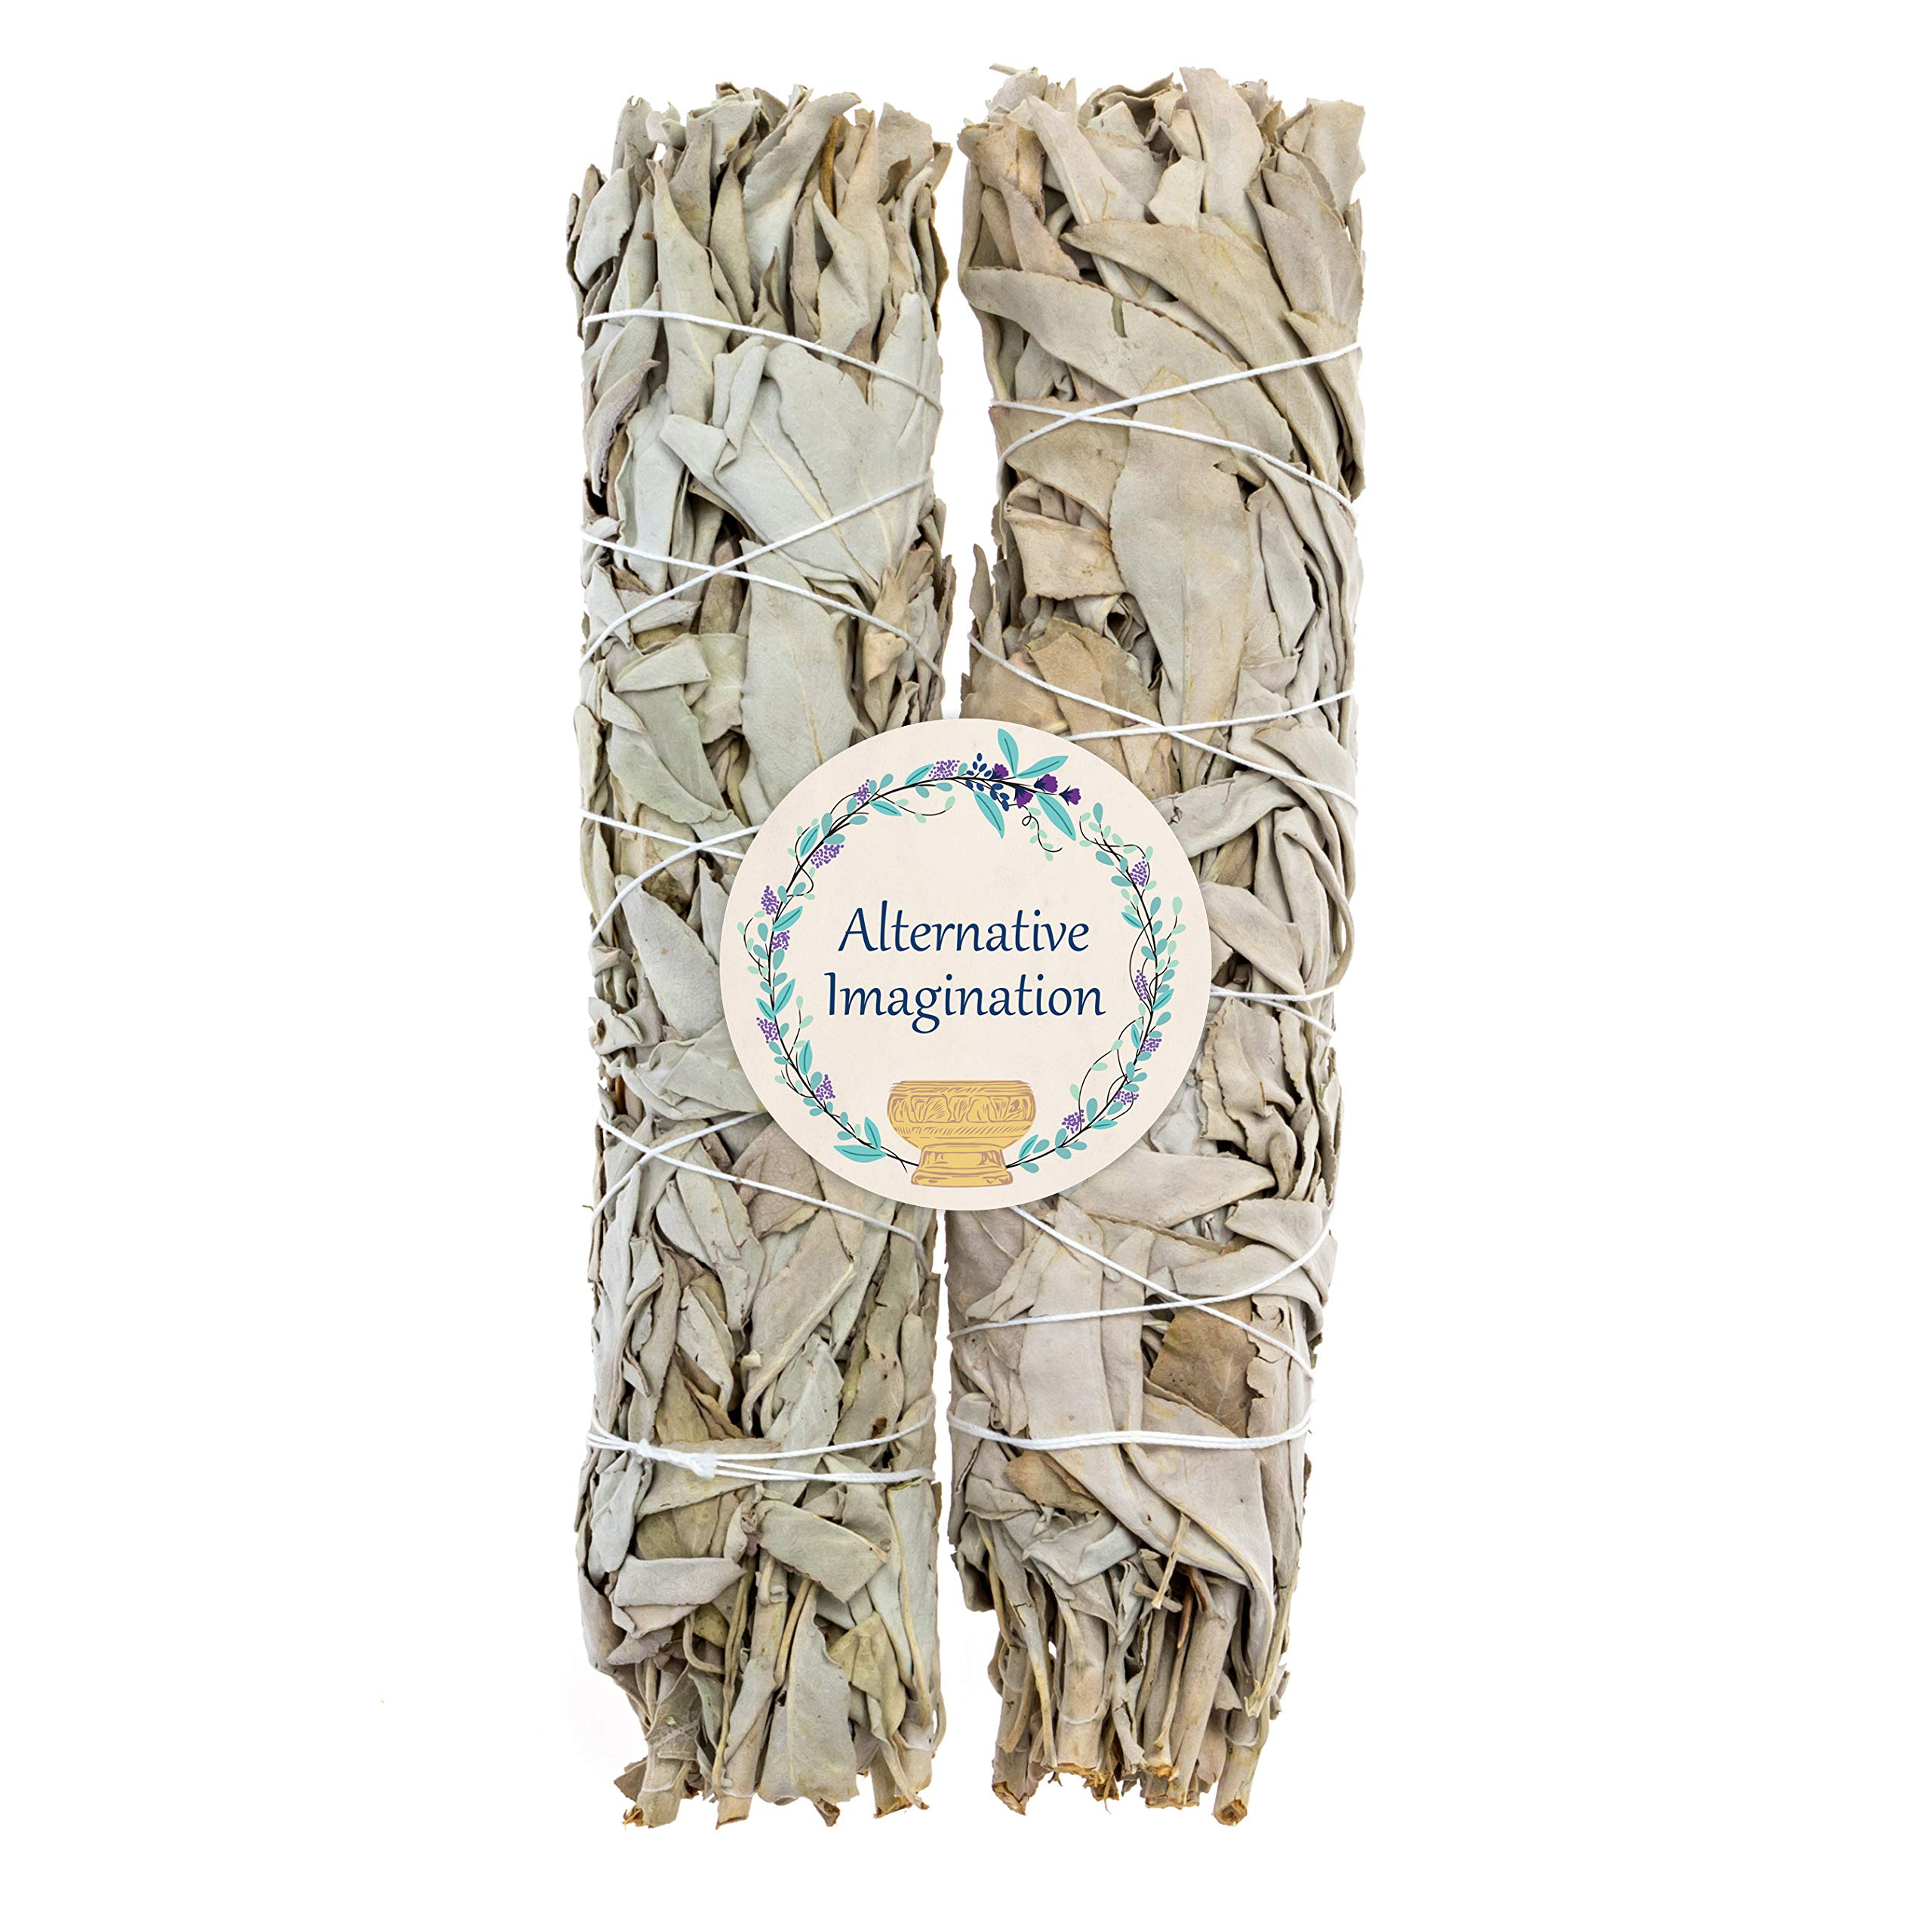 8.5''+ Large California White Sage, Each Stick Approximately 8.5 Inches Long and 1.5 Inches Wide for Smudging Rituals, Energy Clearing, Protection, Incense, Meditation, Made in USA (2 - Extra Large)